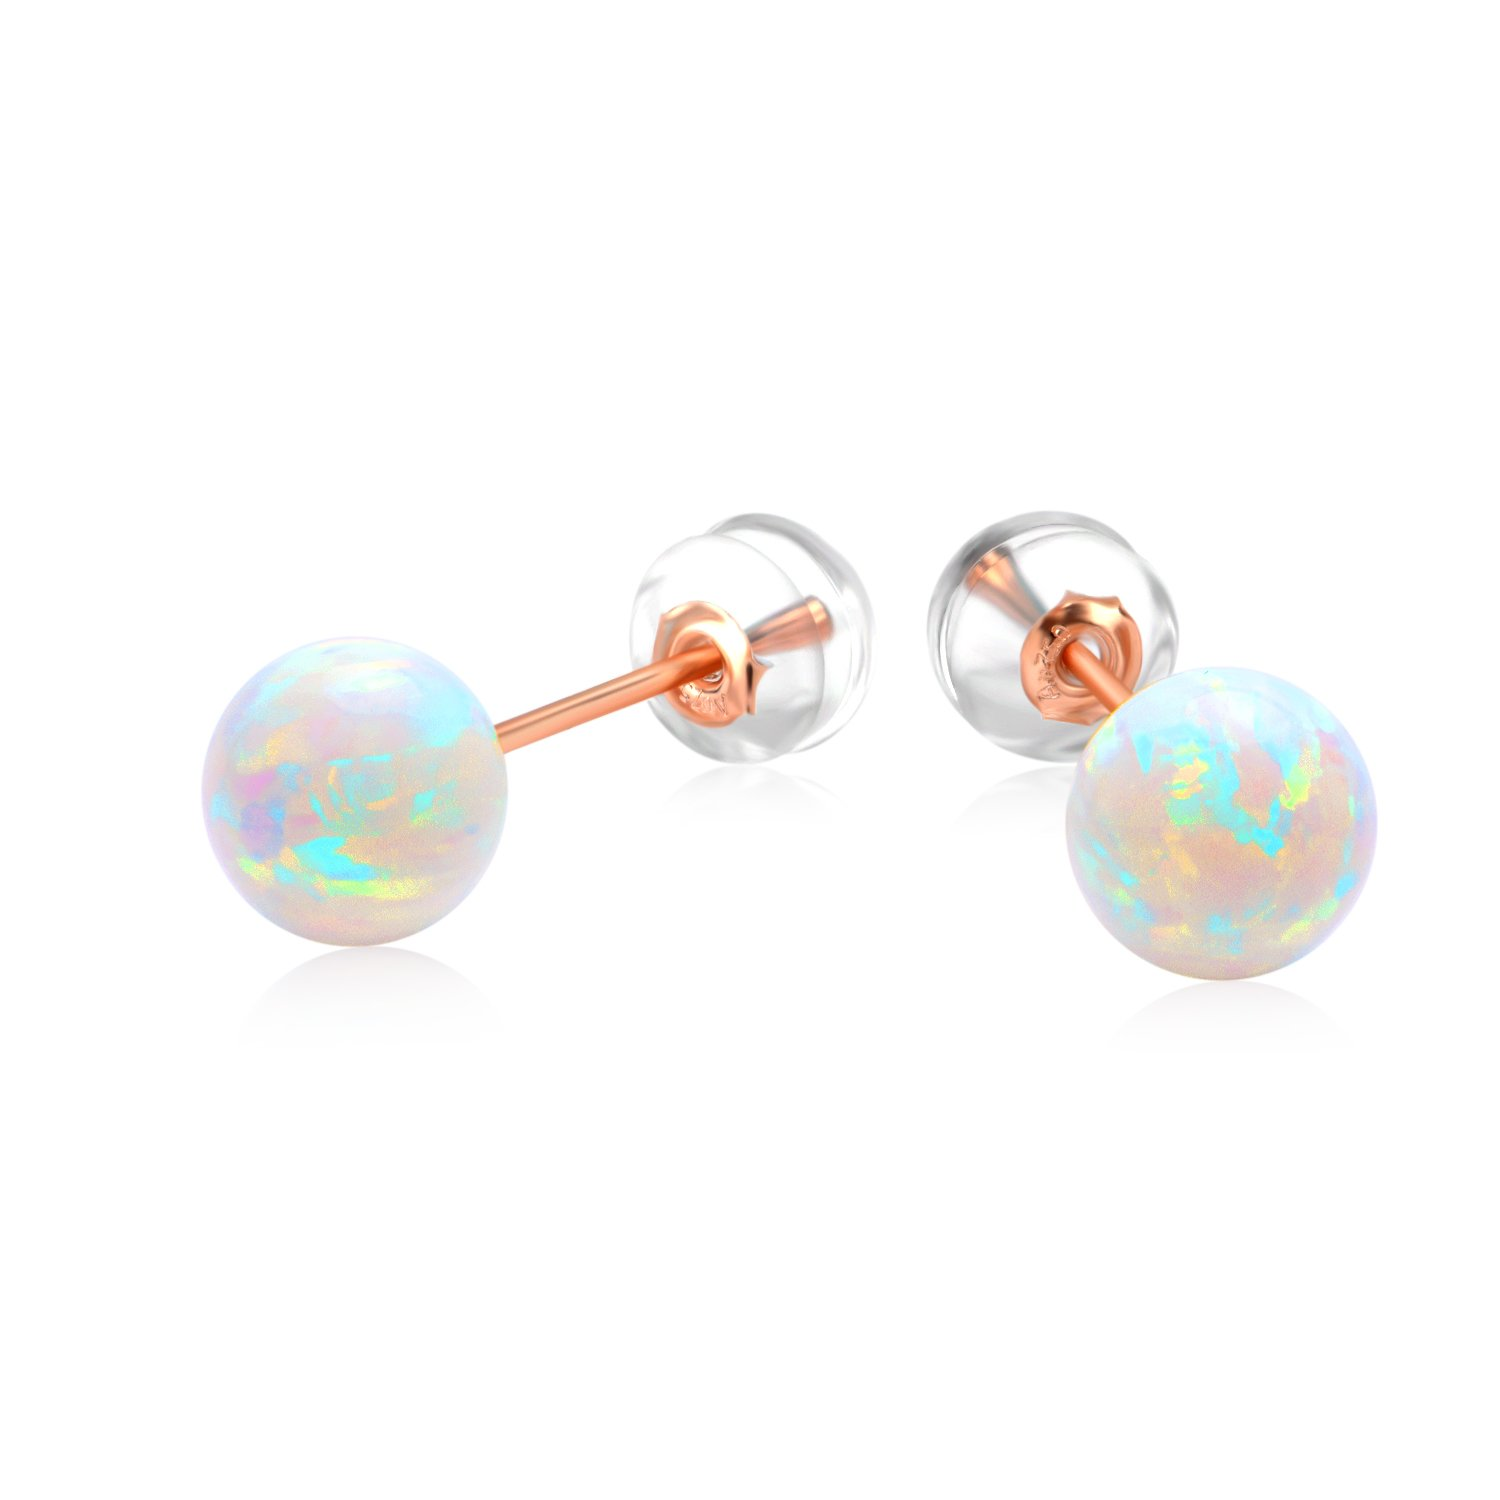 18 K Solid Gold Round Simulated Opal Stud Earrings Ball Fine Jewelry for Women (Rose Gold)